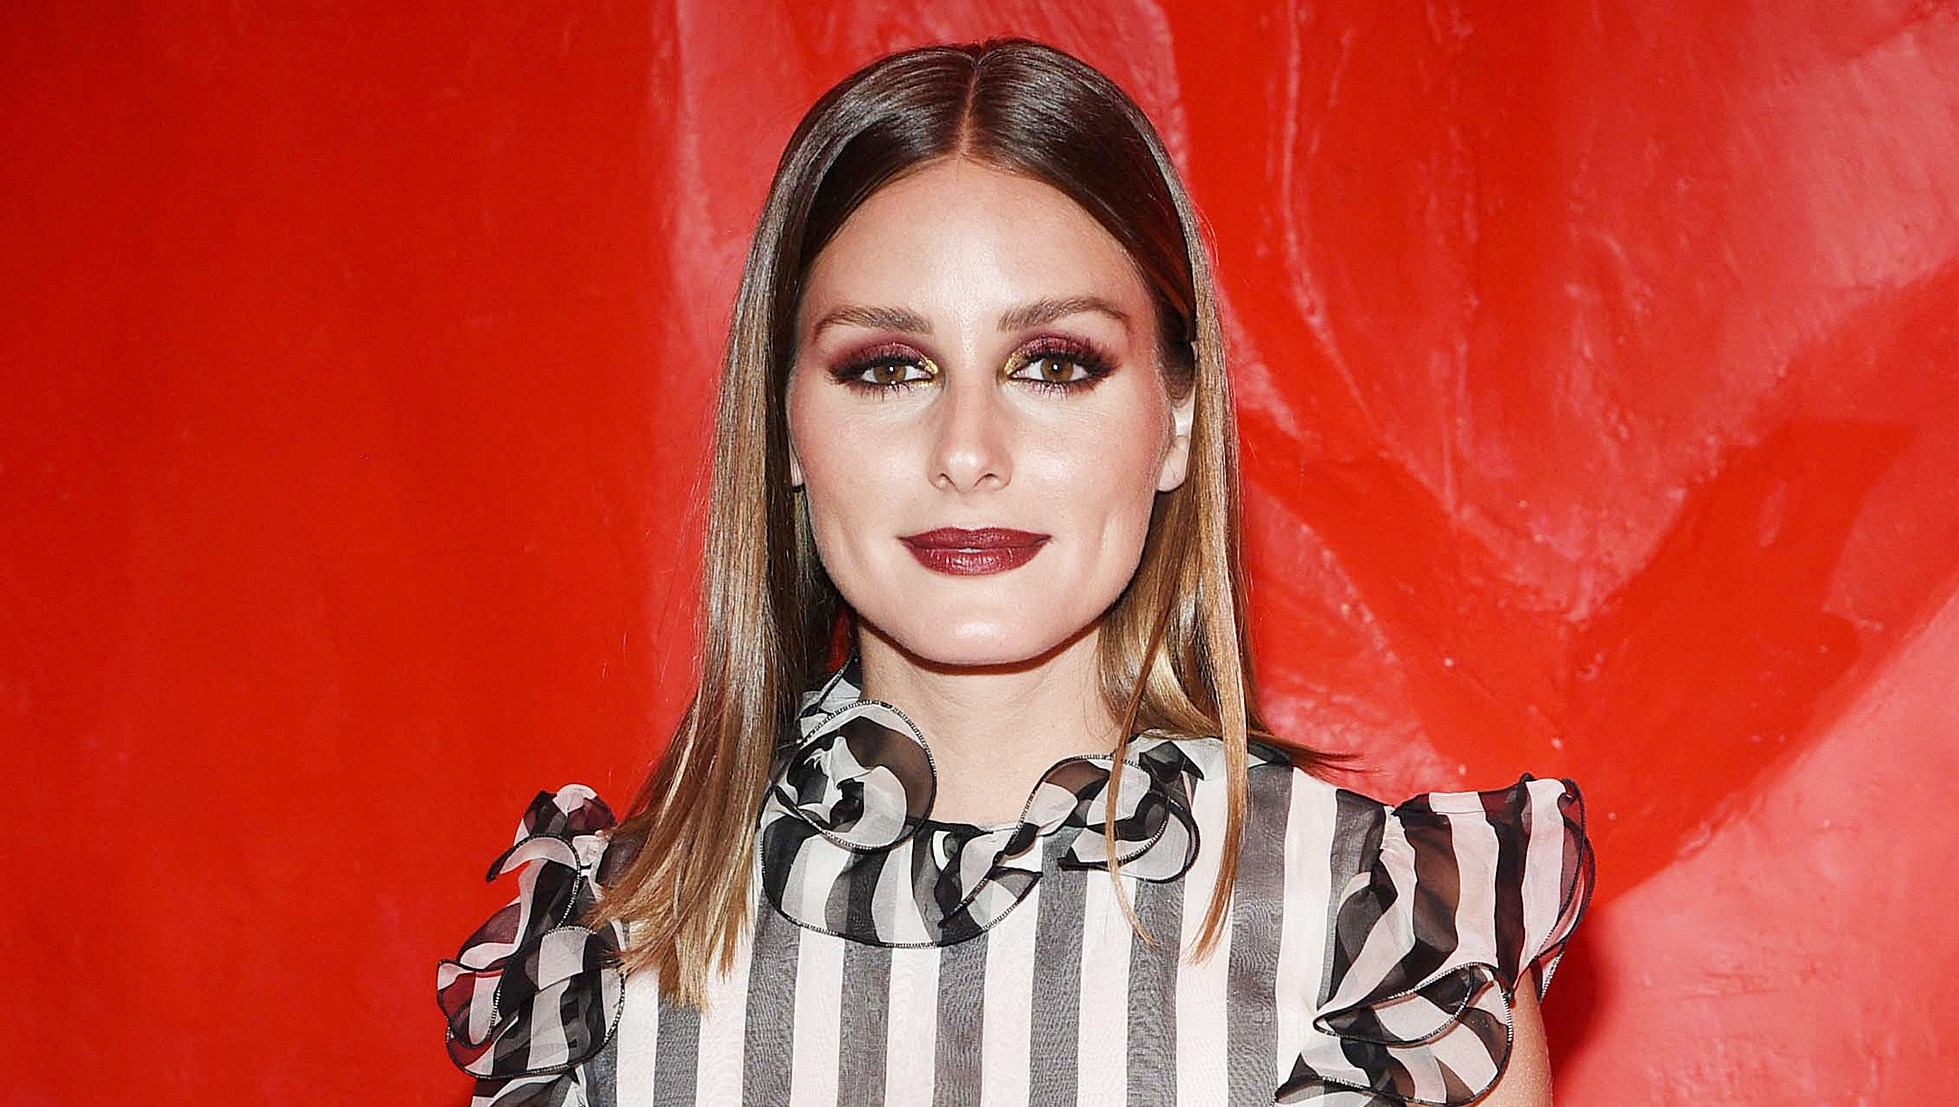 Found A Vampy End Of Summer Makeup Option Courtesy Of Olivia Palermo  C2 B7 Celebrity Fashion